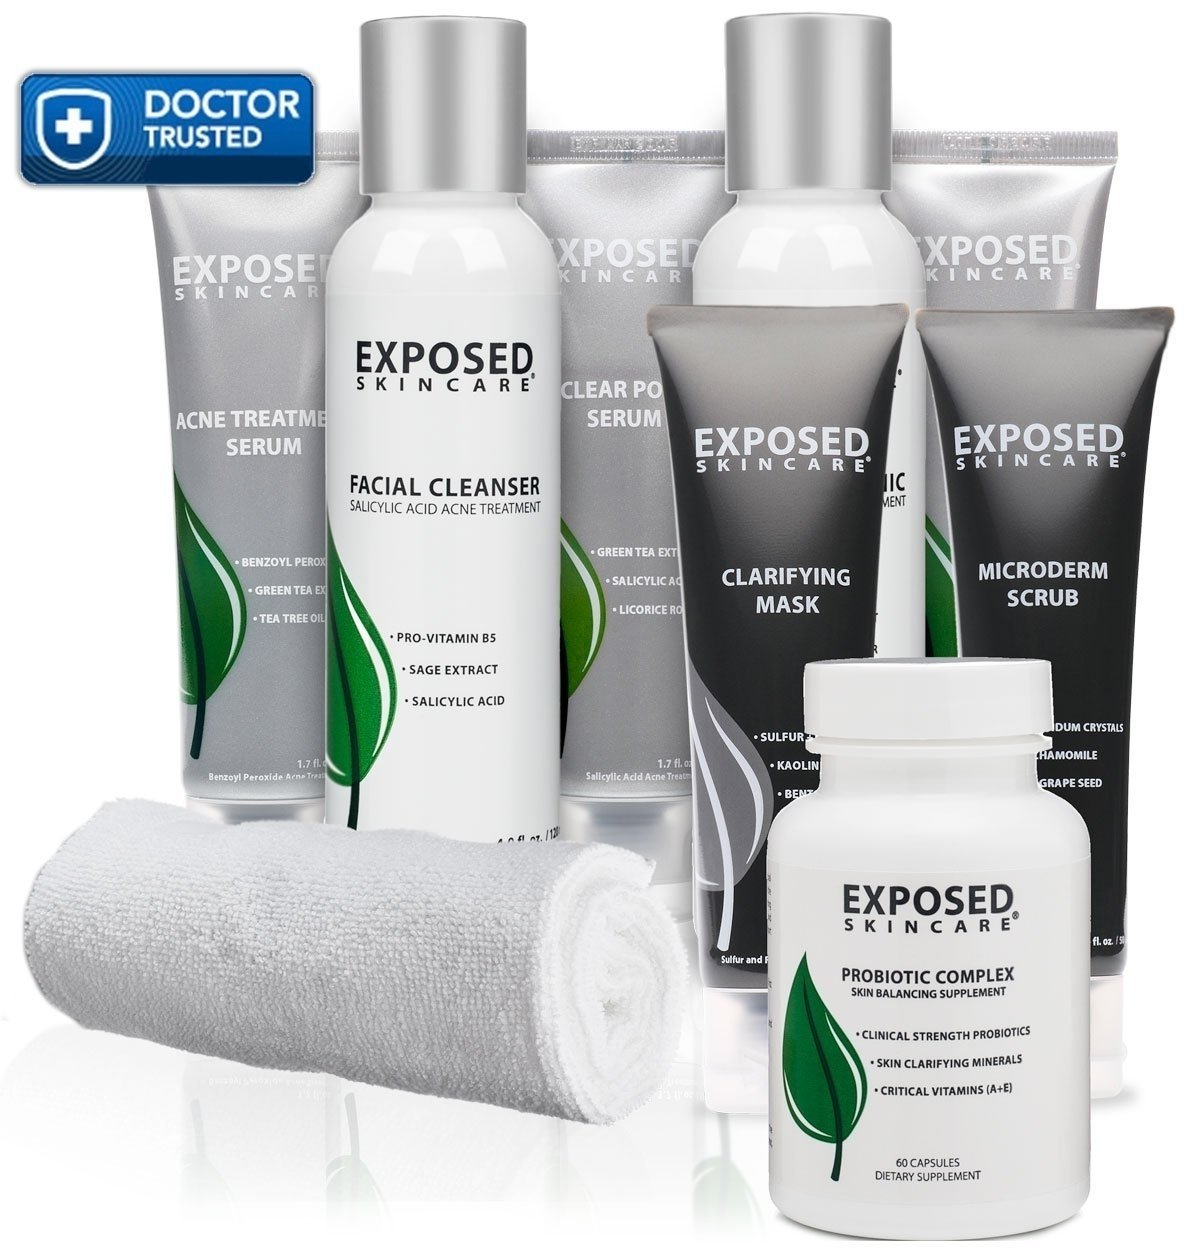 exposed skin care reviews 2015